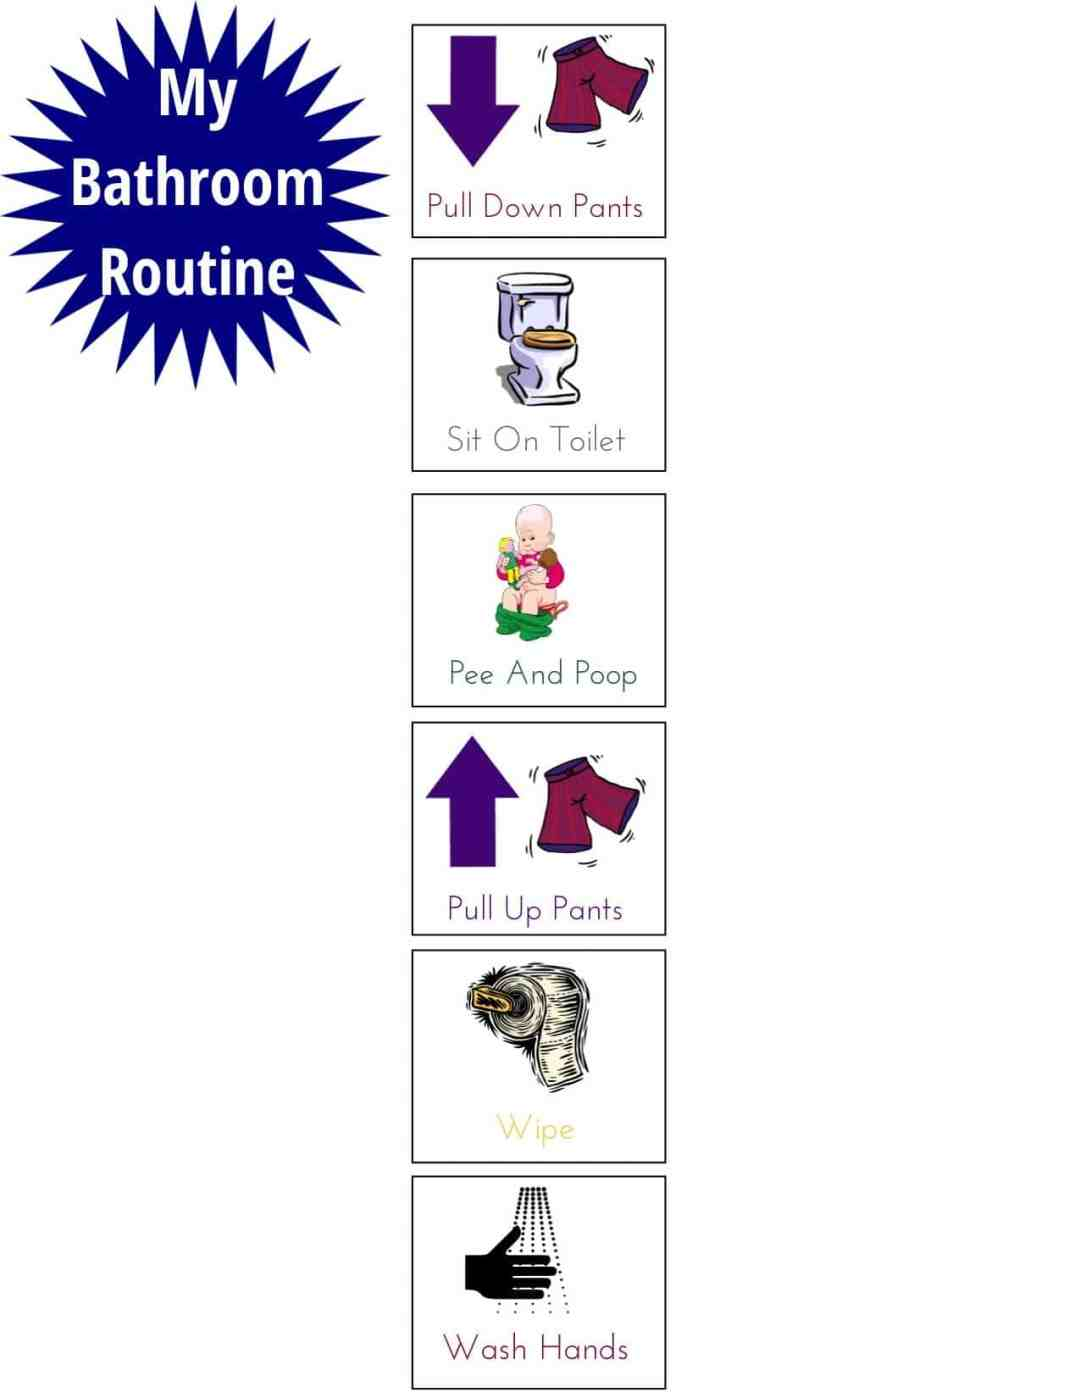 Getting The Kids Rooms Organized For Back To School - Bathroom Routine